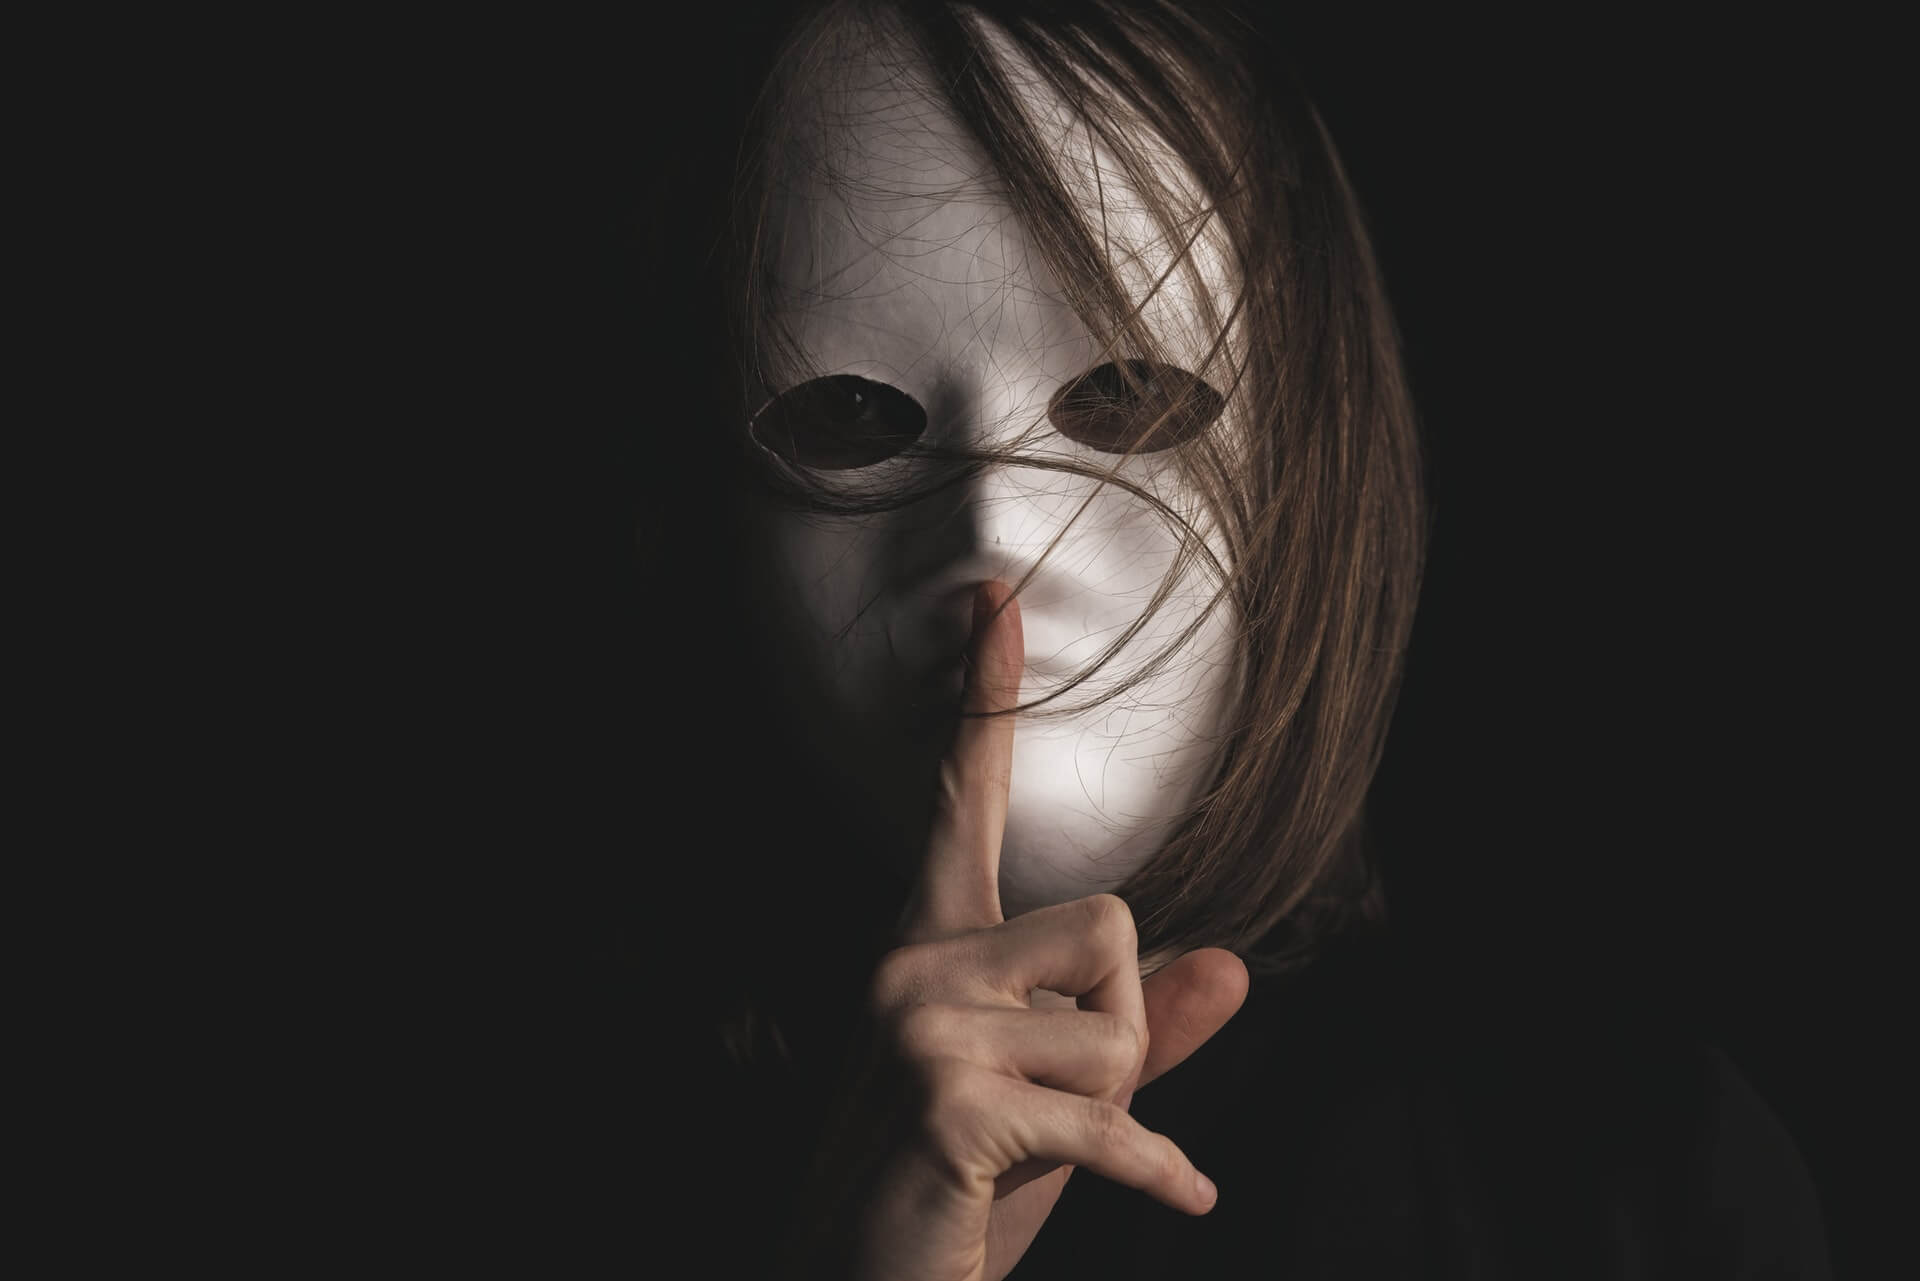 A woman wearing a mask shushing the camera representing the deceit present in travel scams